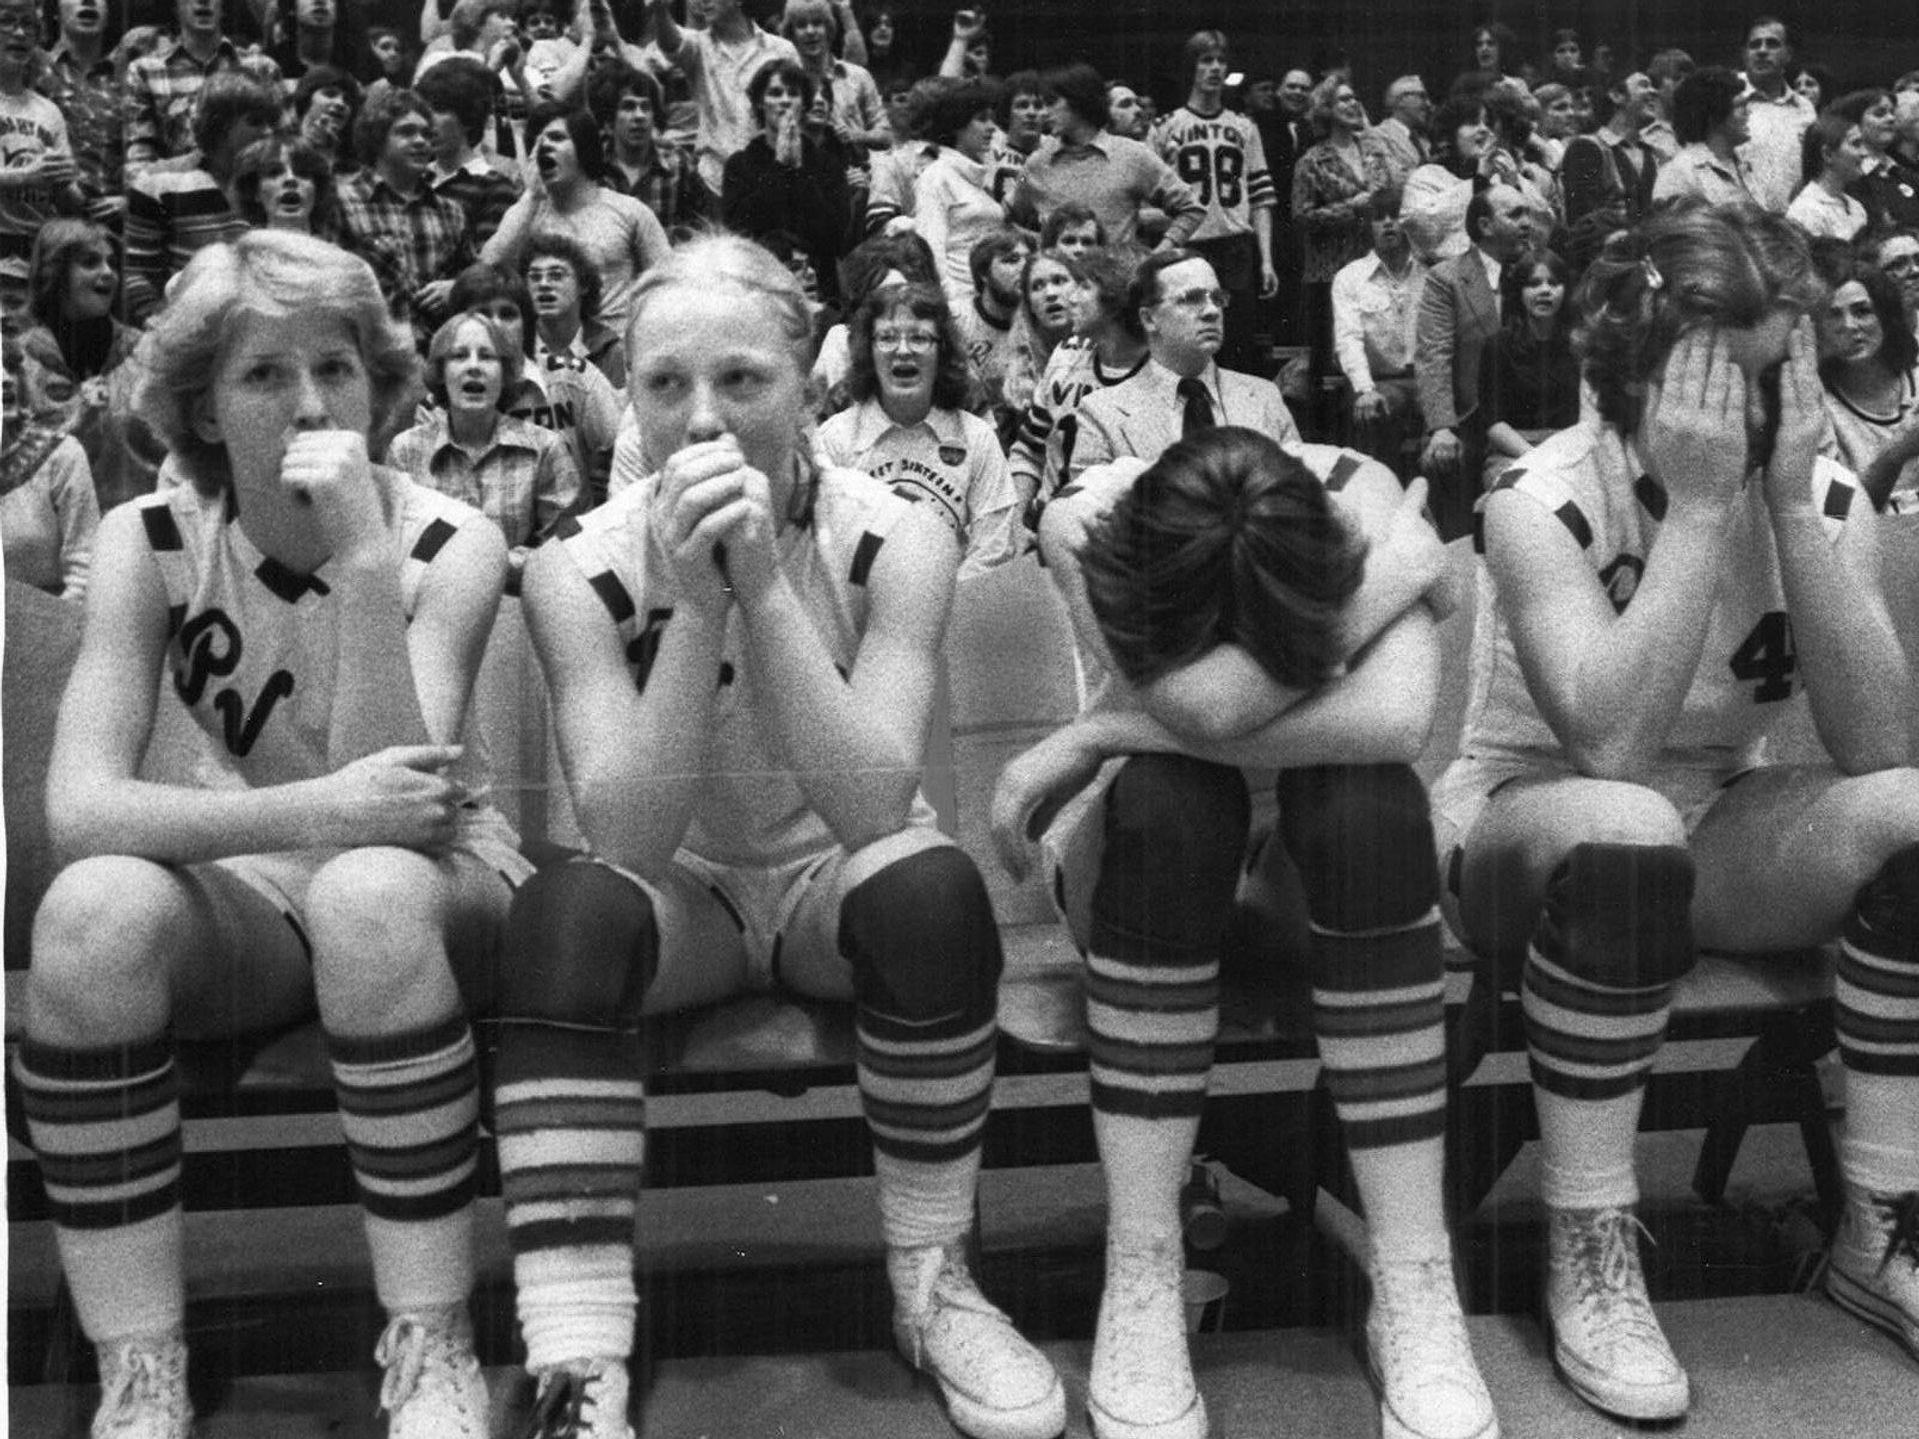 1978: As the clock ticks off the final seconds, Pleasant Valley players resort to tears. Register file photo